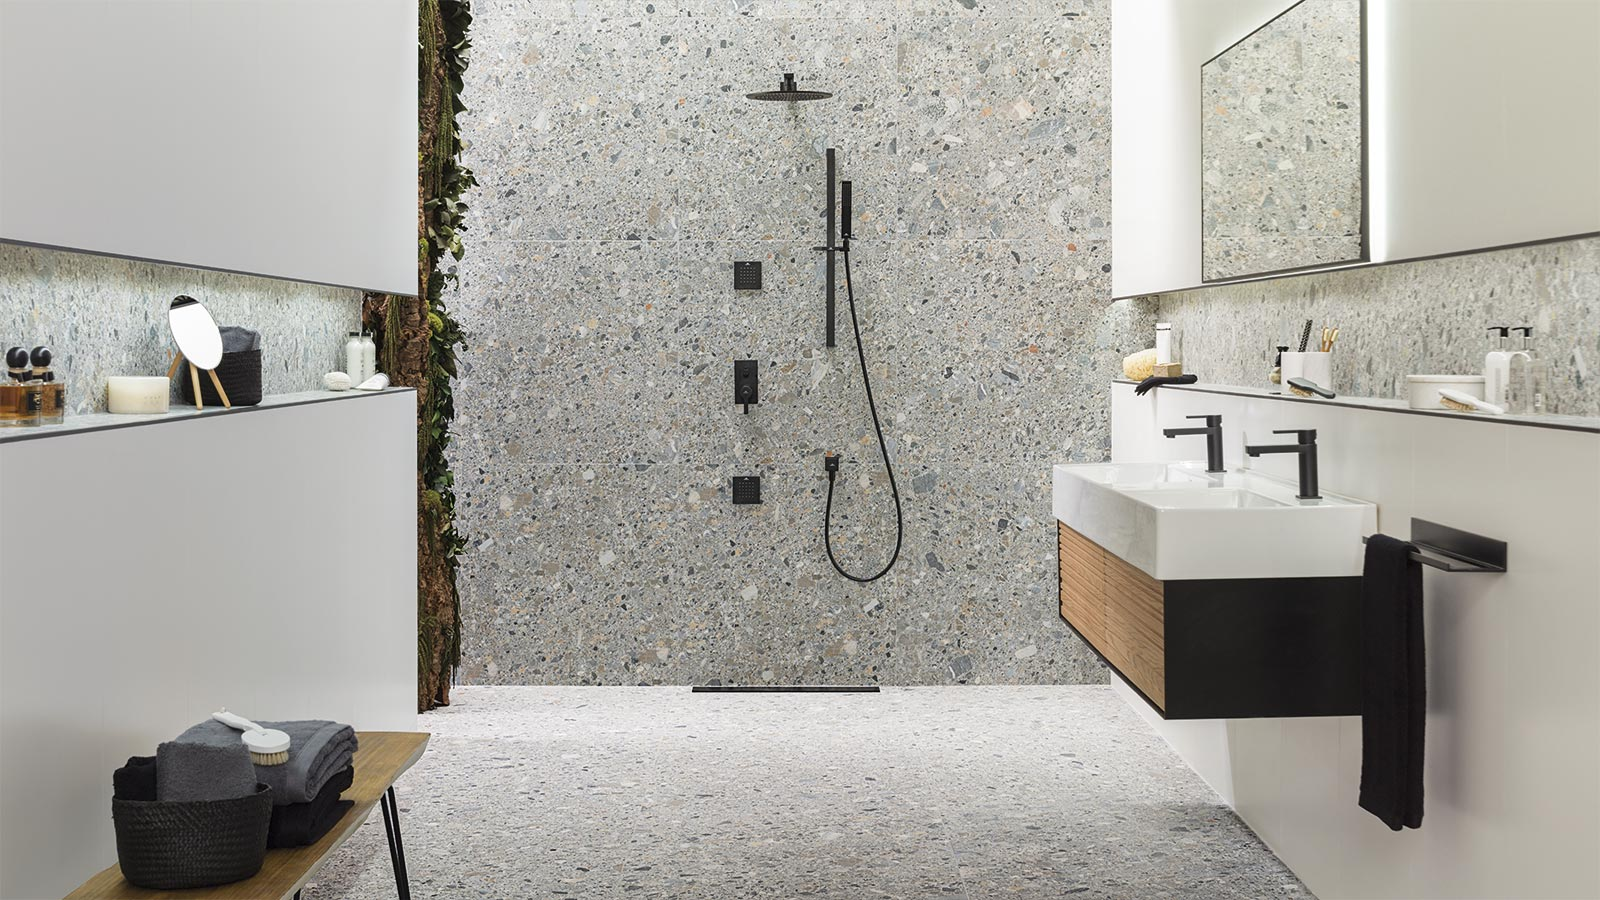 Ceppo Stone by Porcelanosa: Stone turned into ceramic